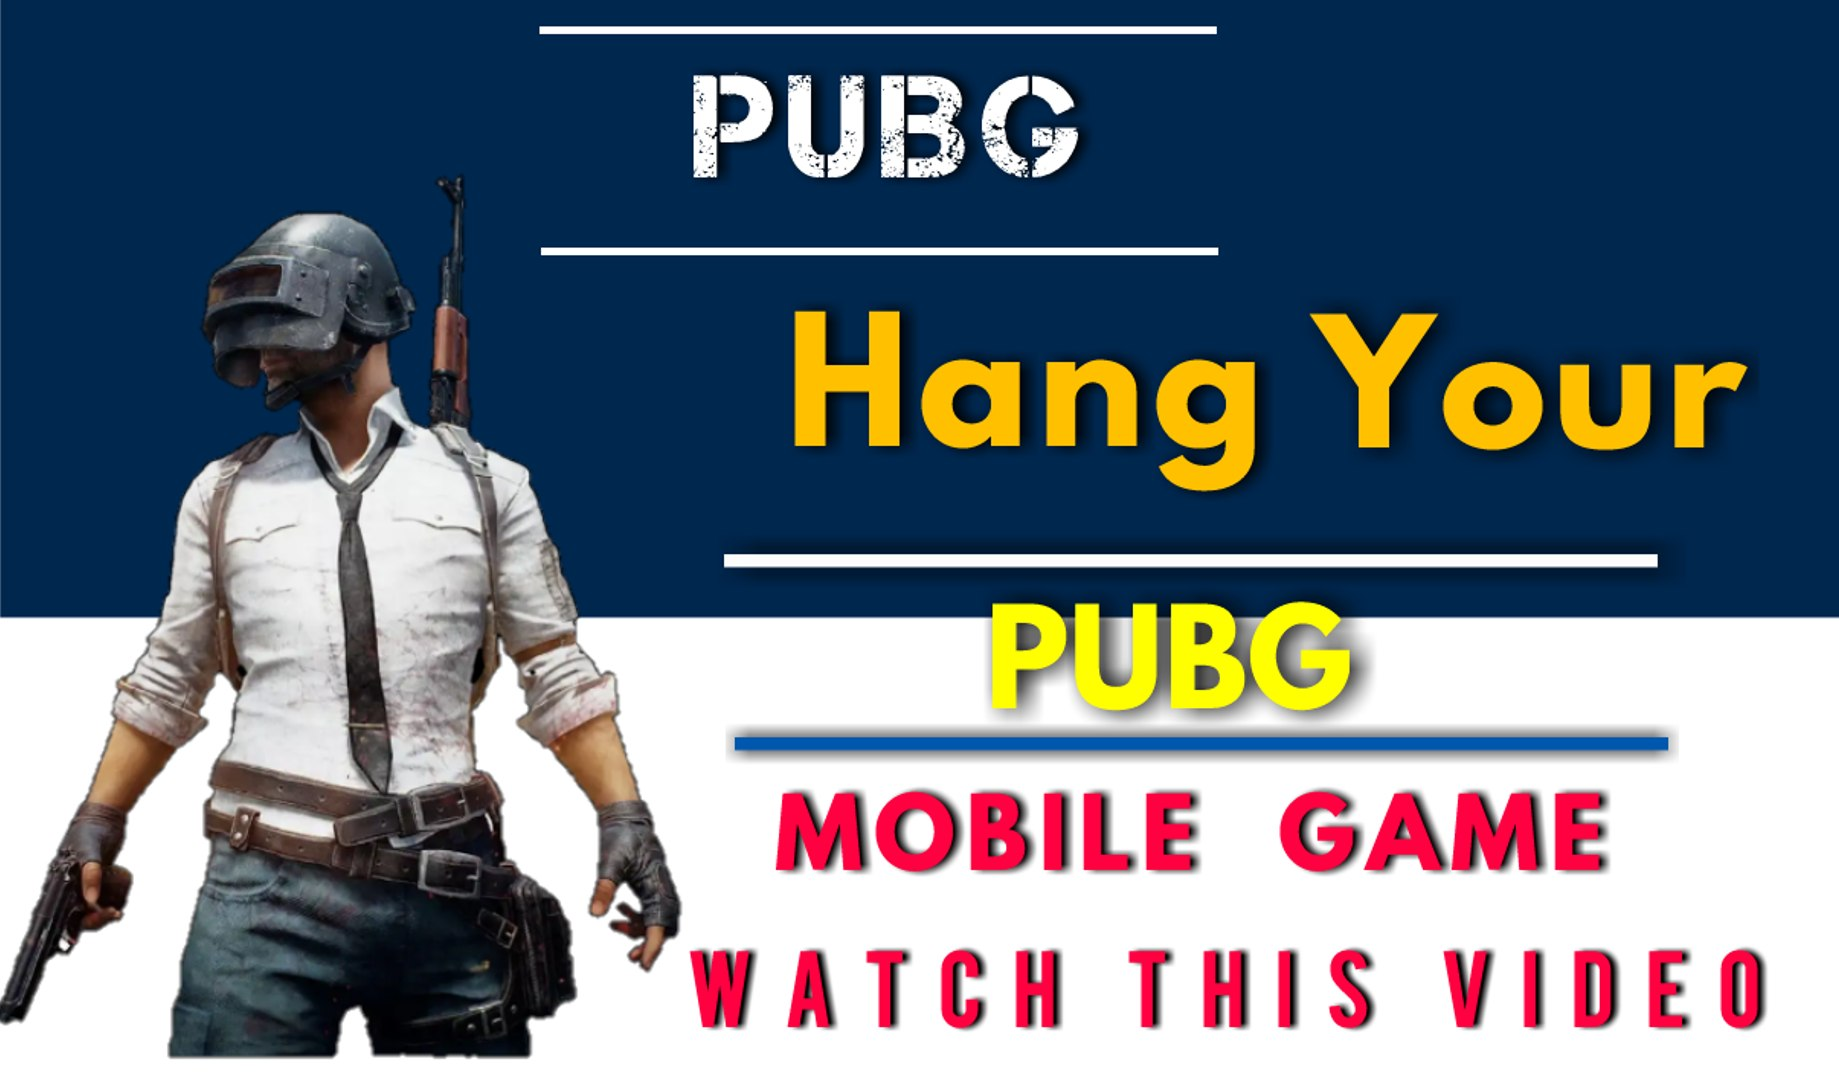 PUBG-Hang your PUBG mobile game watch this video